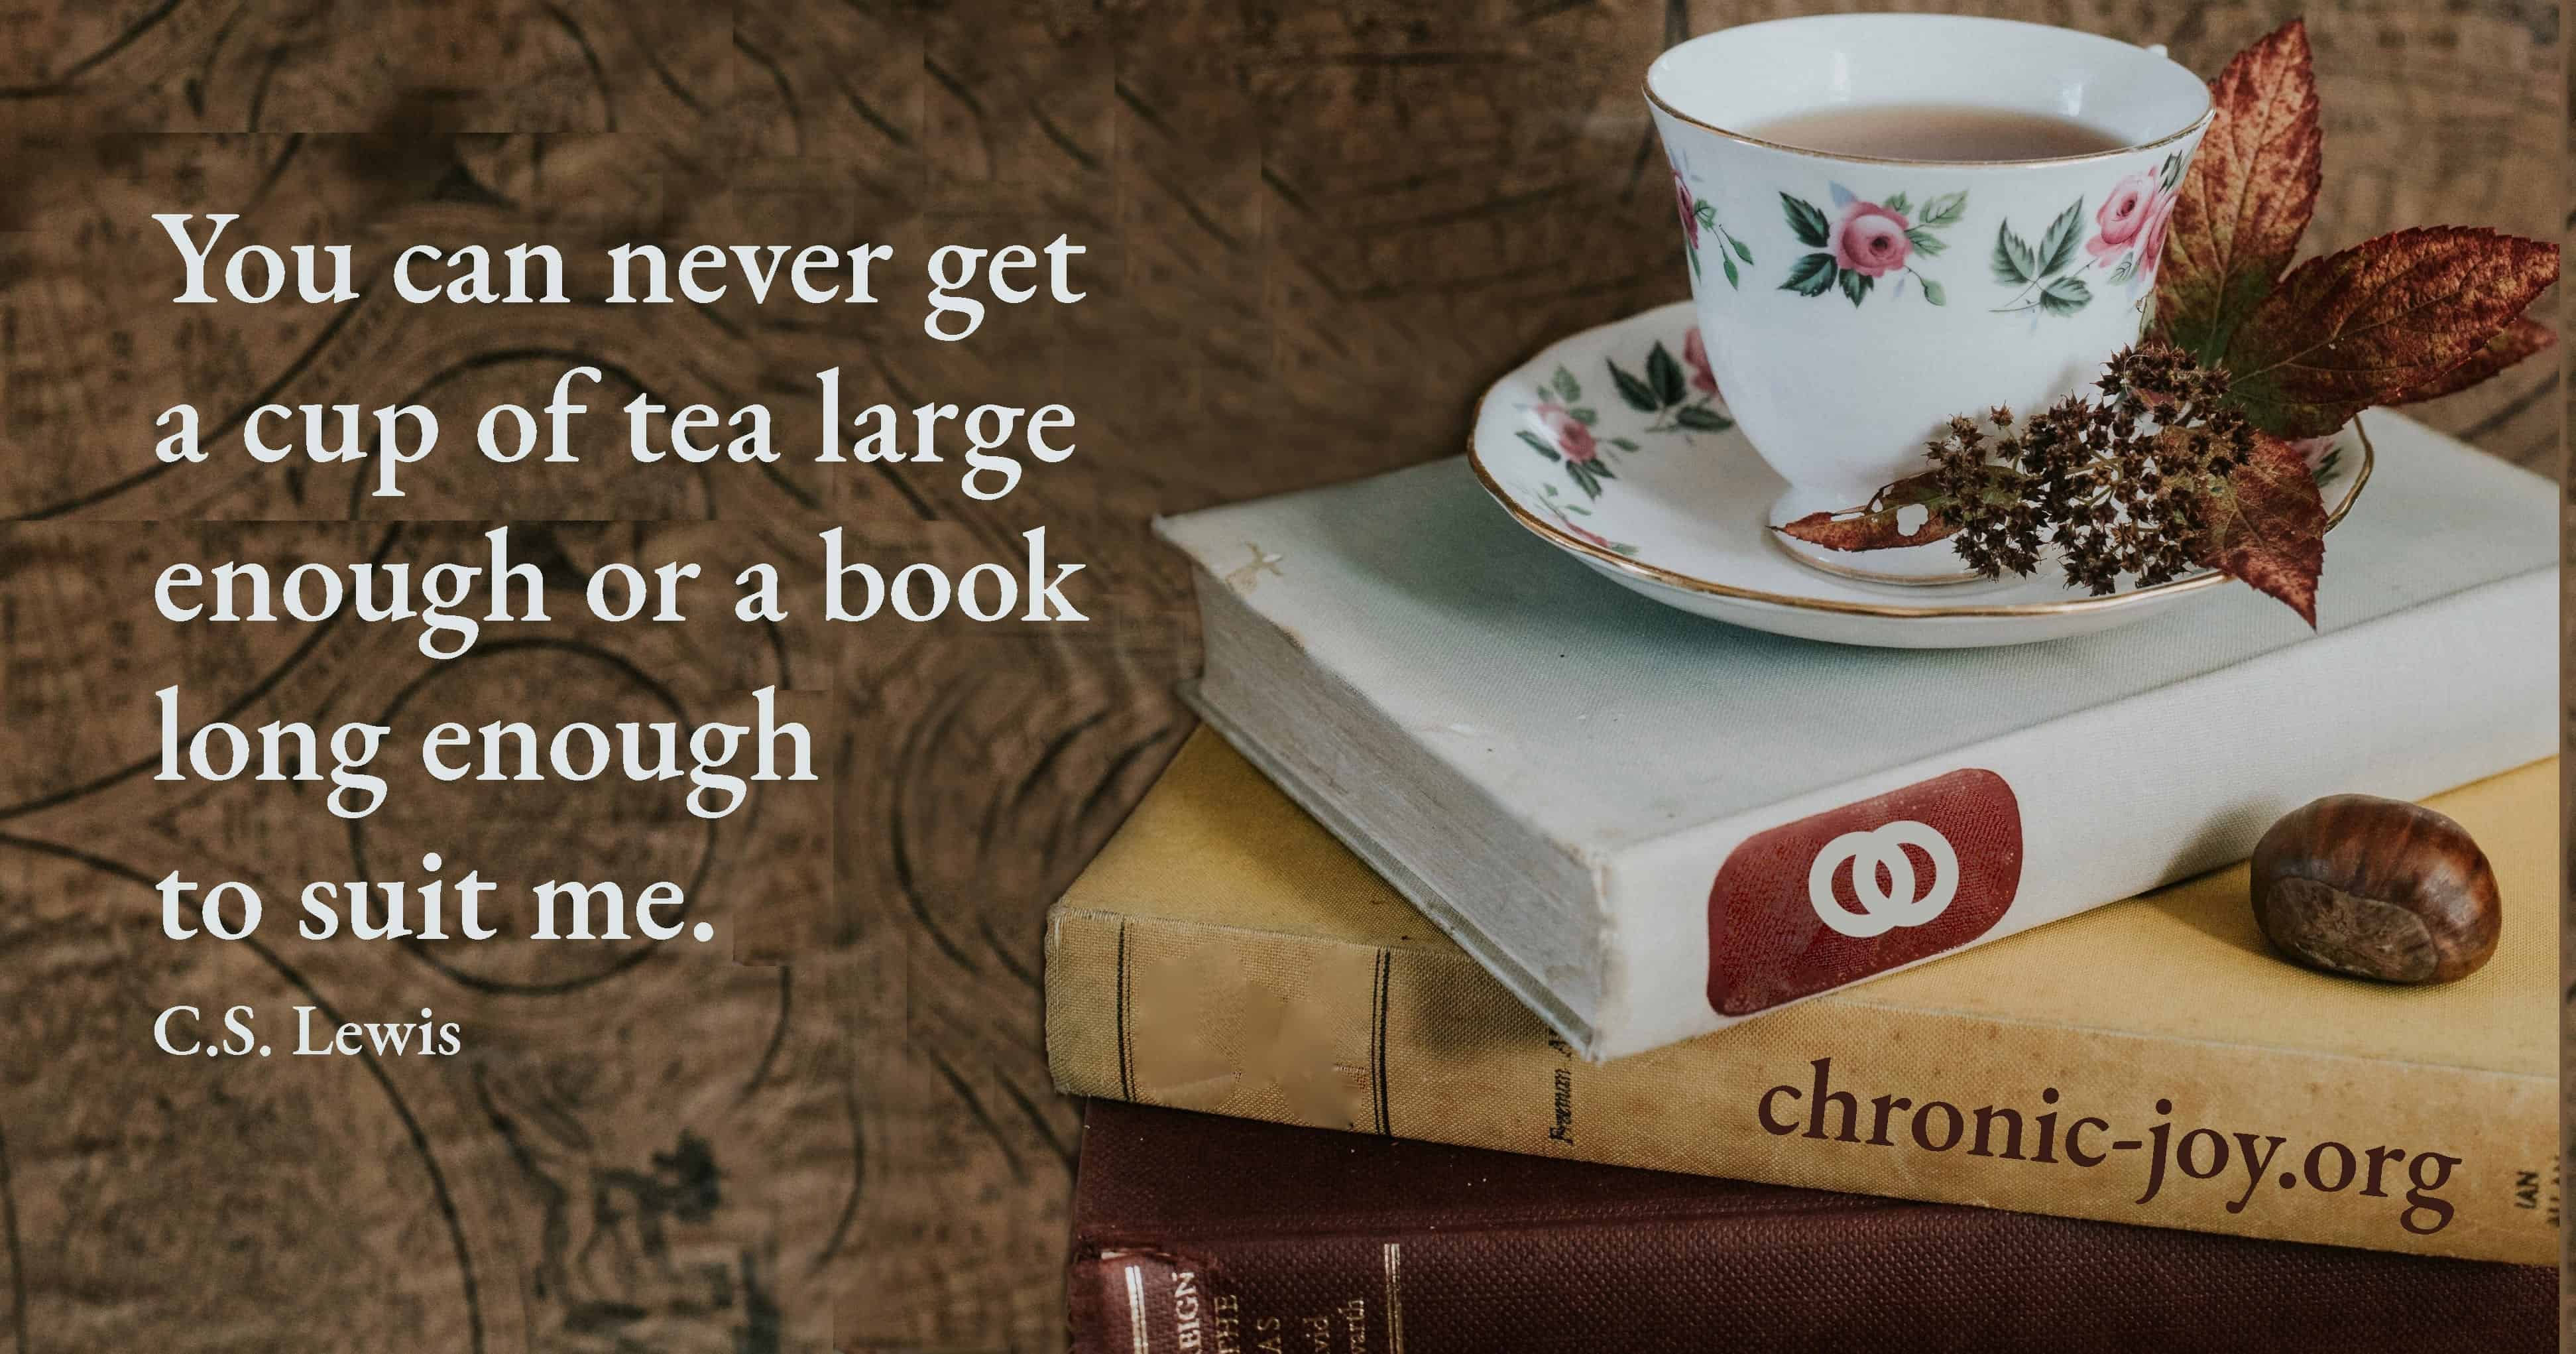 You can never get a cup of tea large enough or a book long enough to suit me. ~ C.S. Lewis